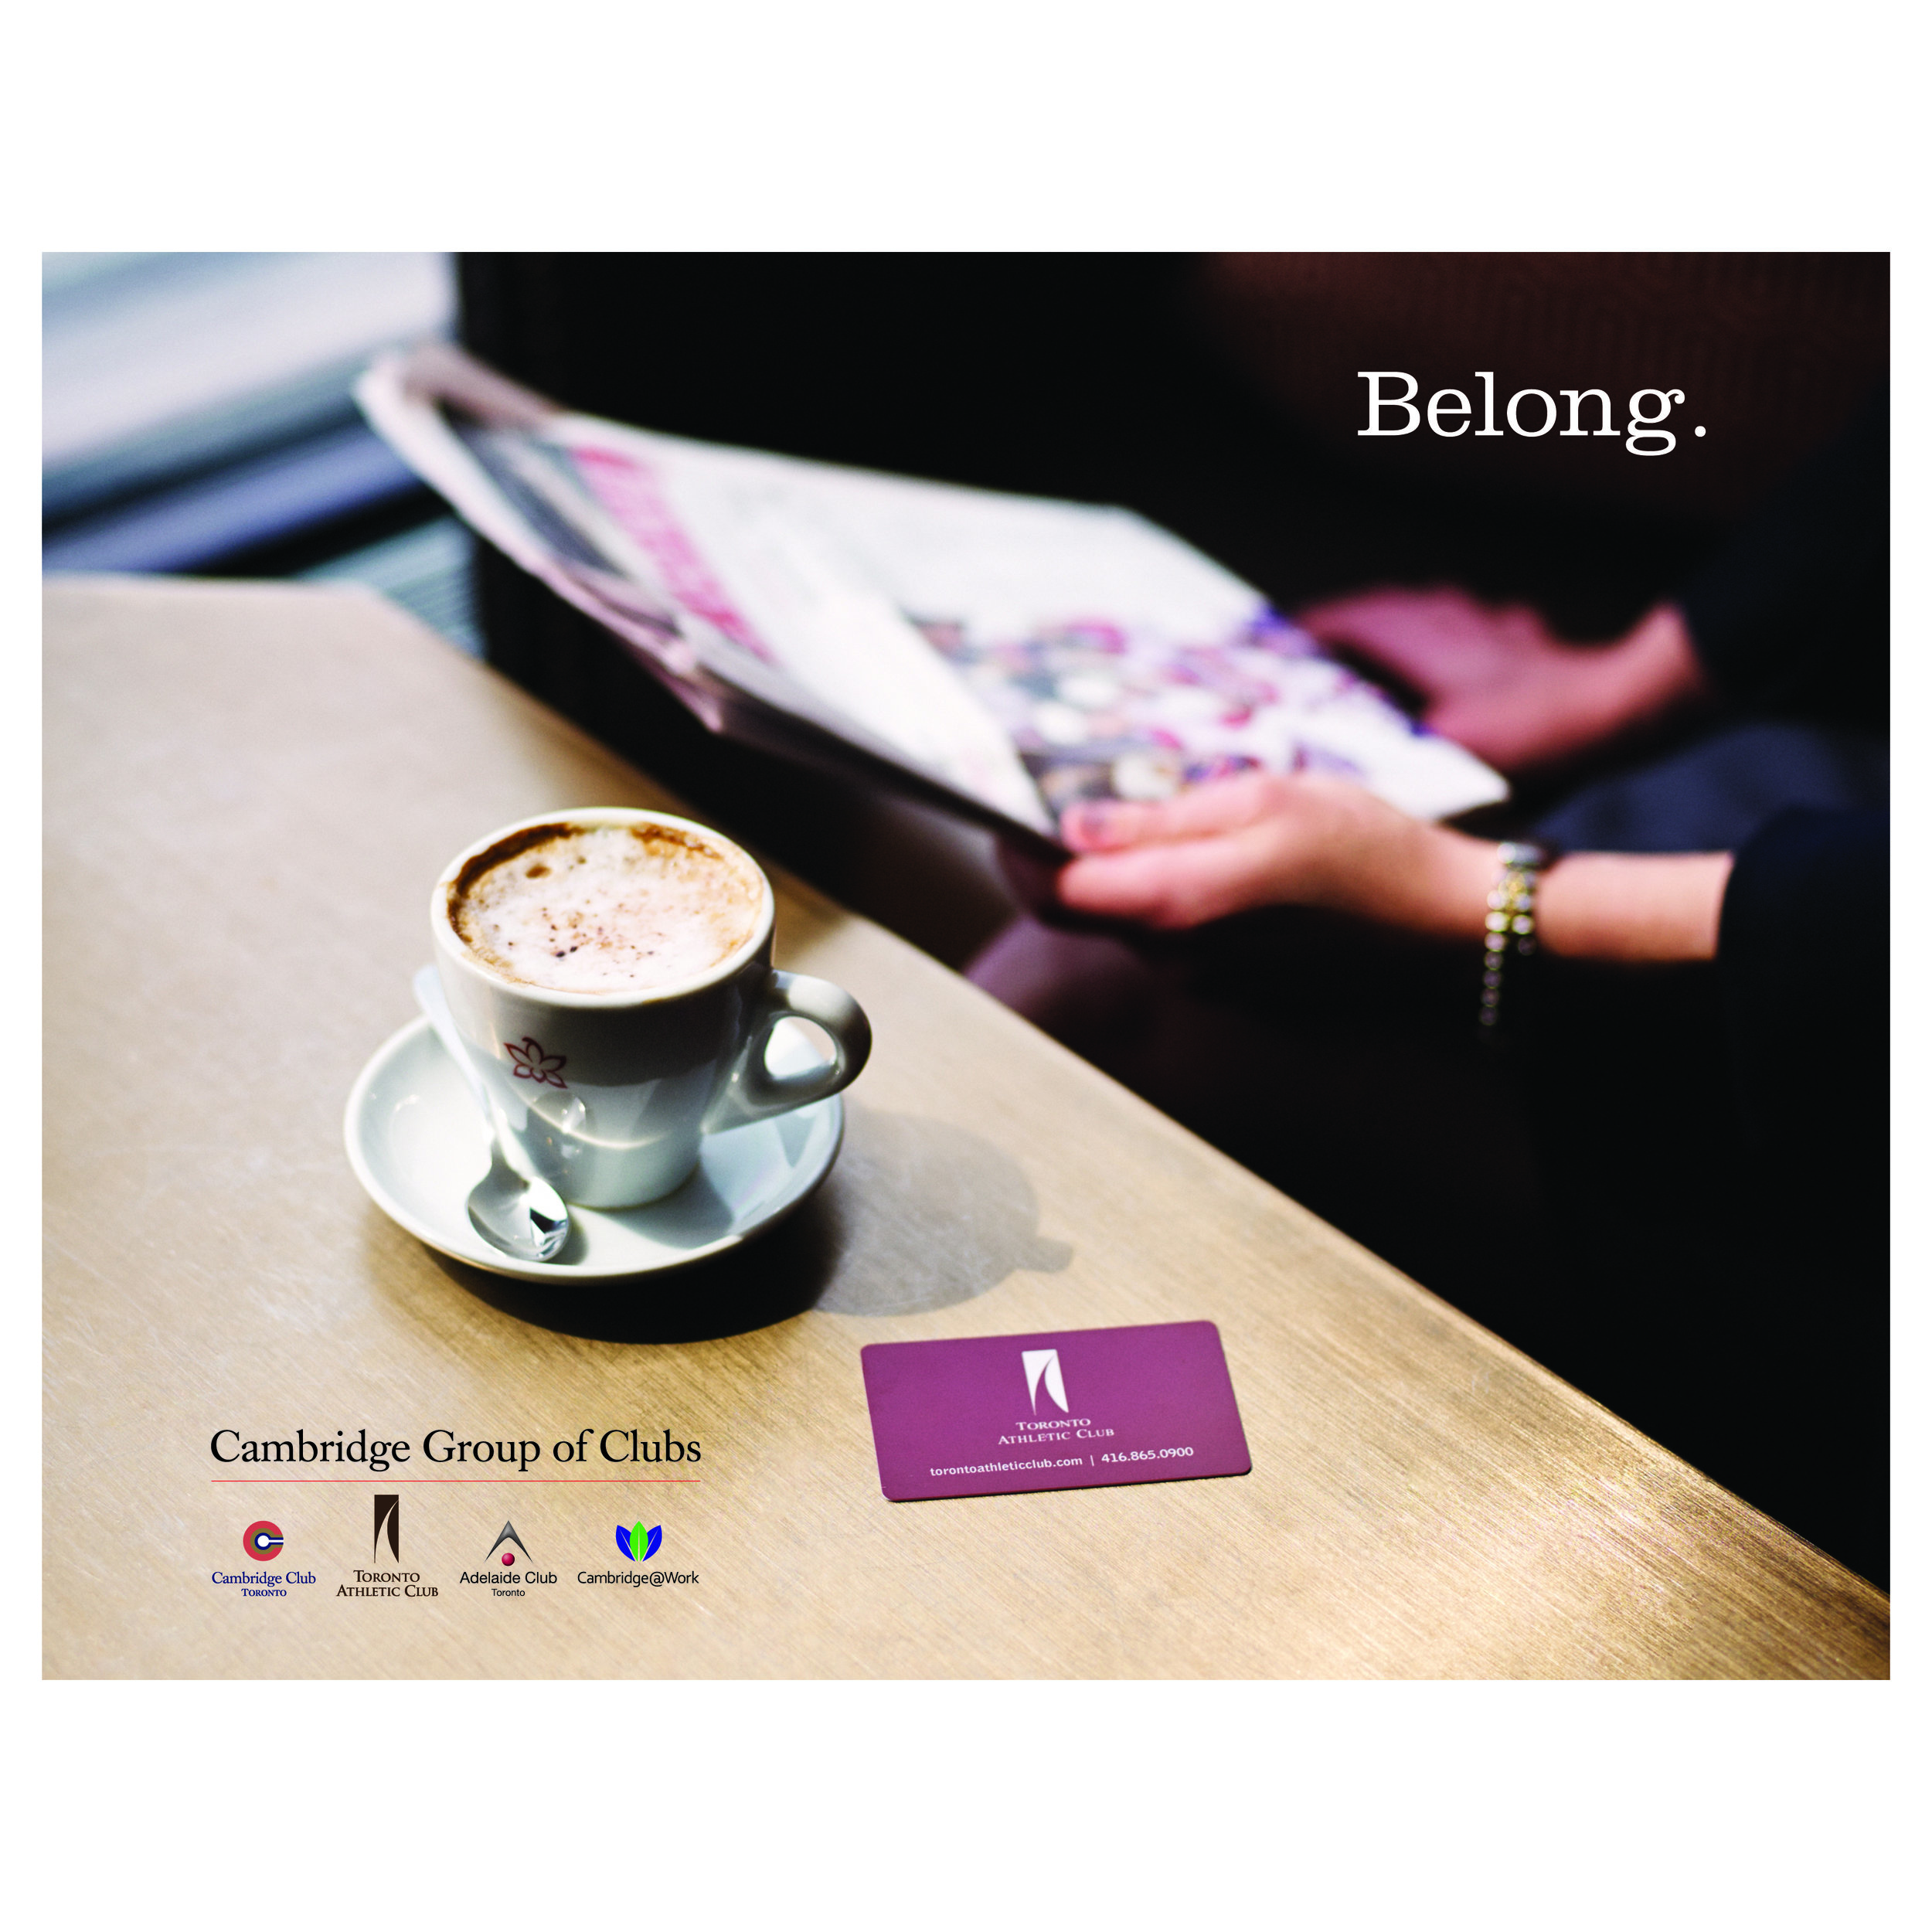 Cambridge Group of Clubs, Toronto - 'Belong' Promotional Brochure